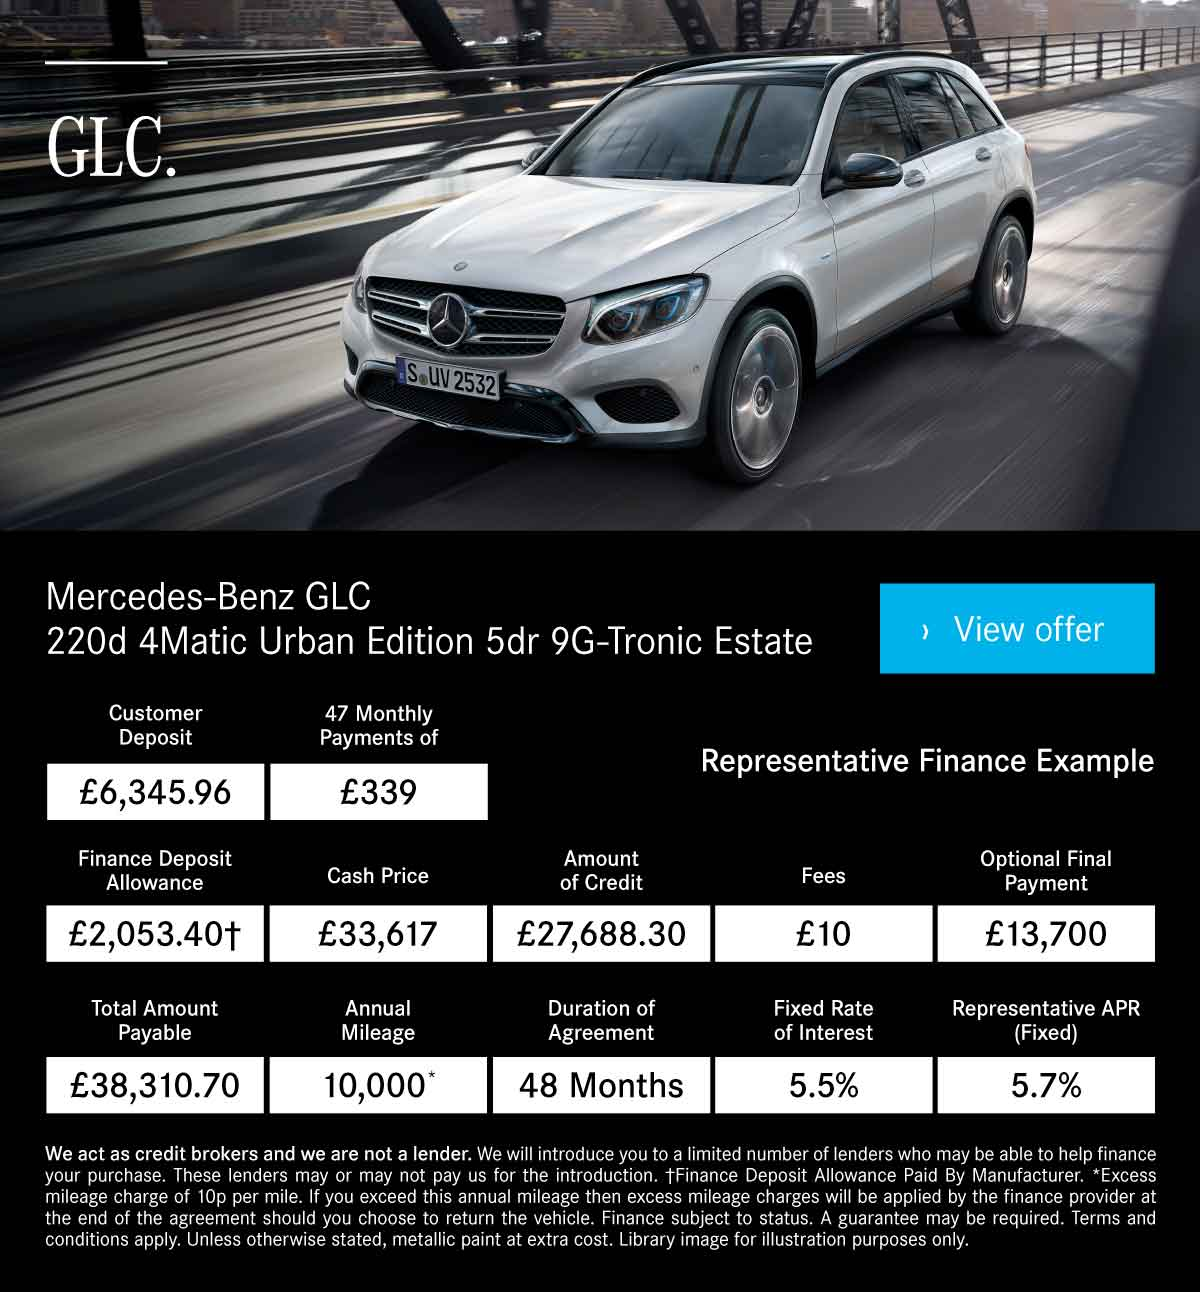 [Mercedes Benz GLC] MB GLC Urban Edition 180419 Banner 1